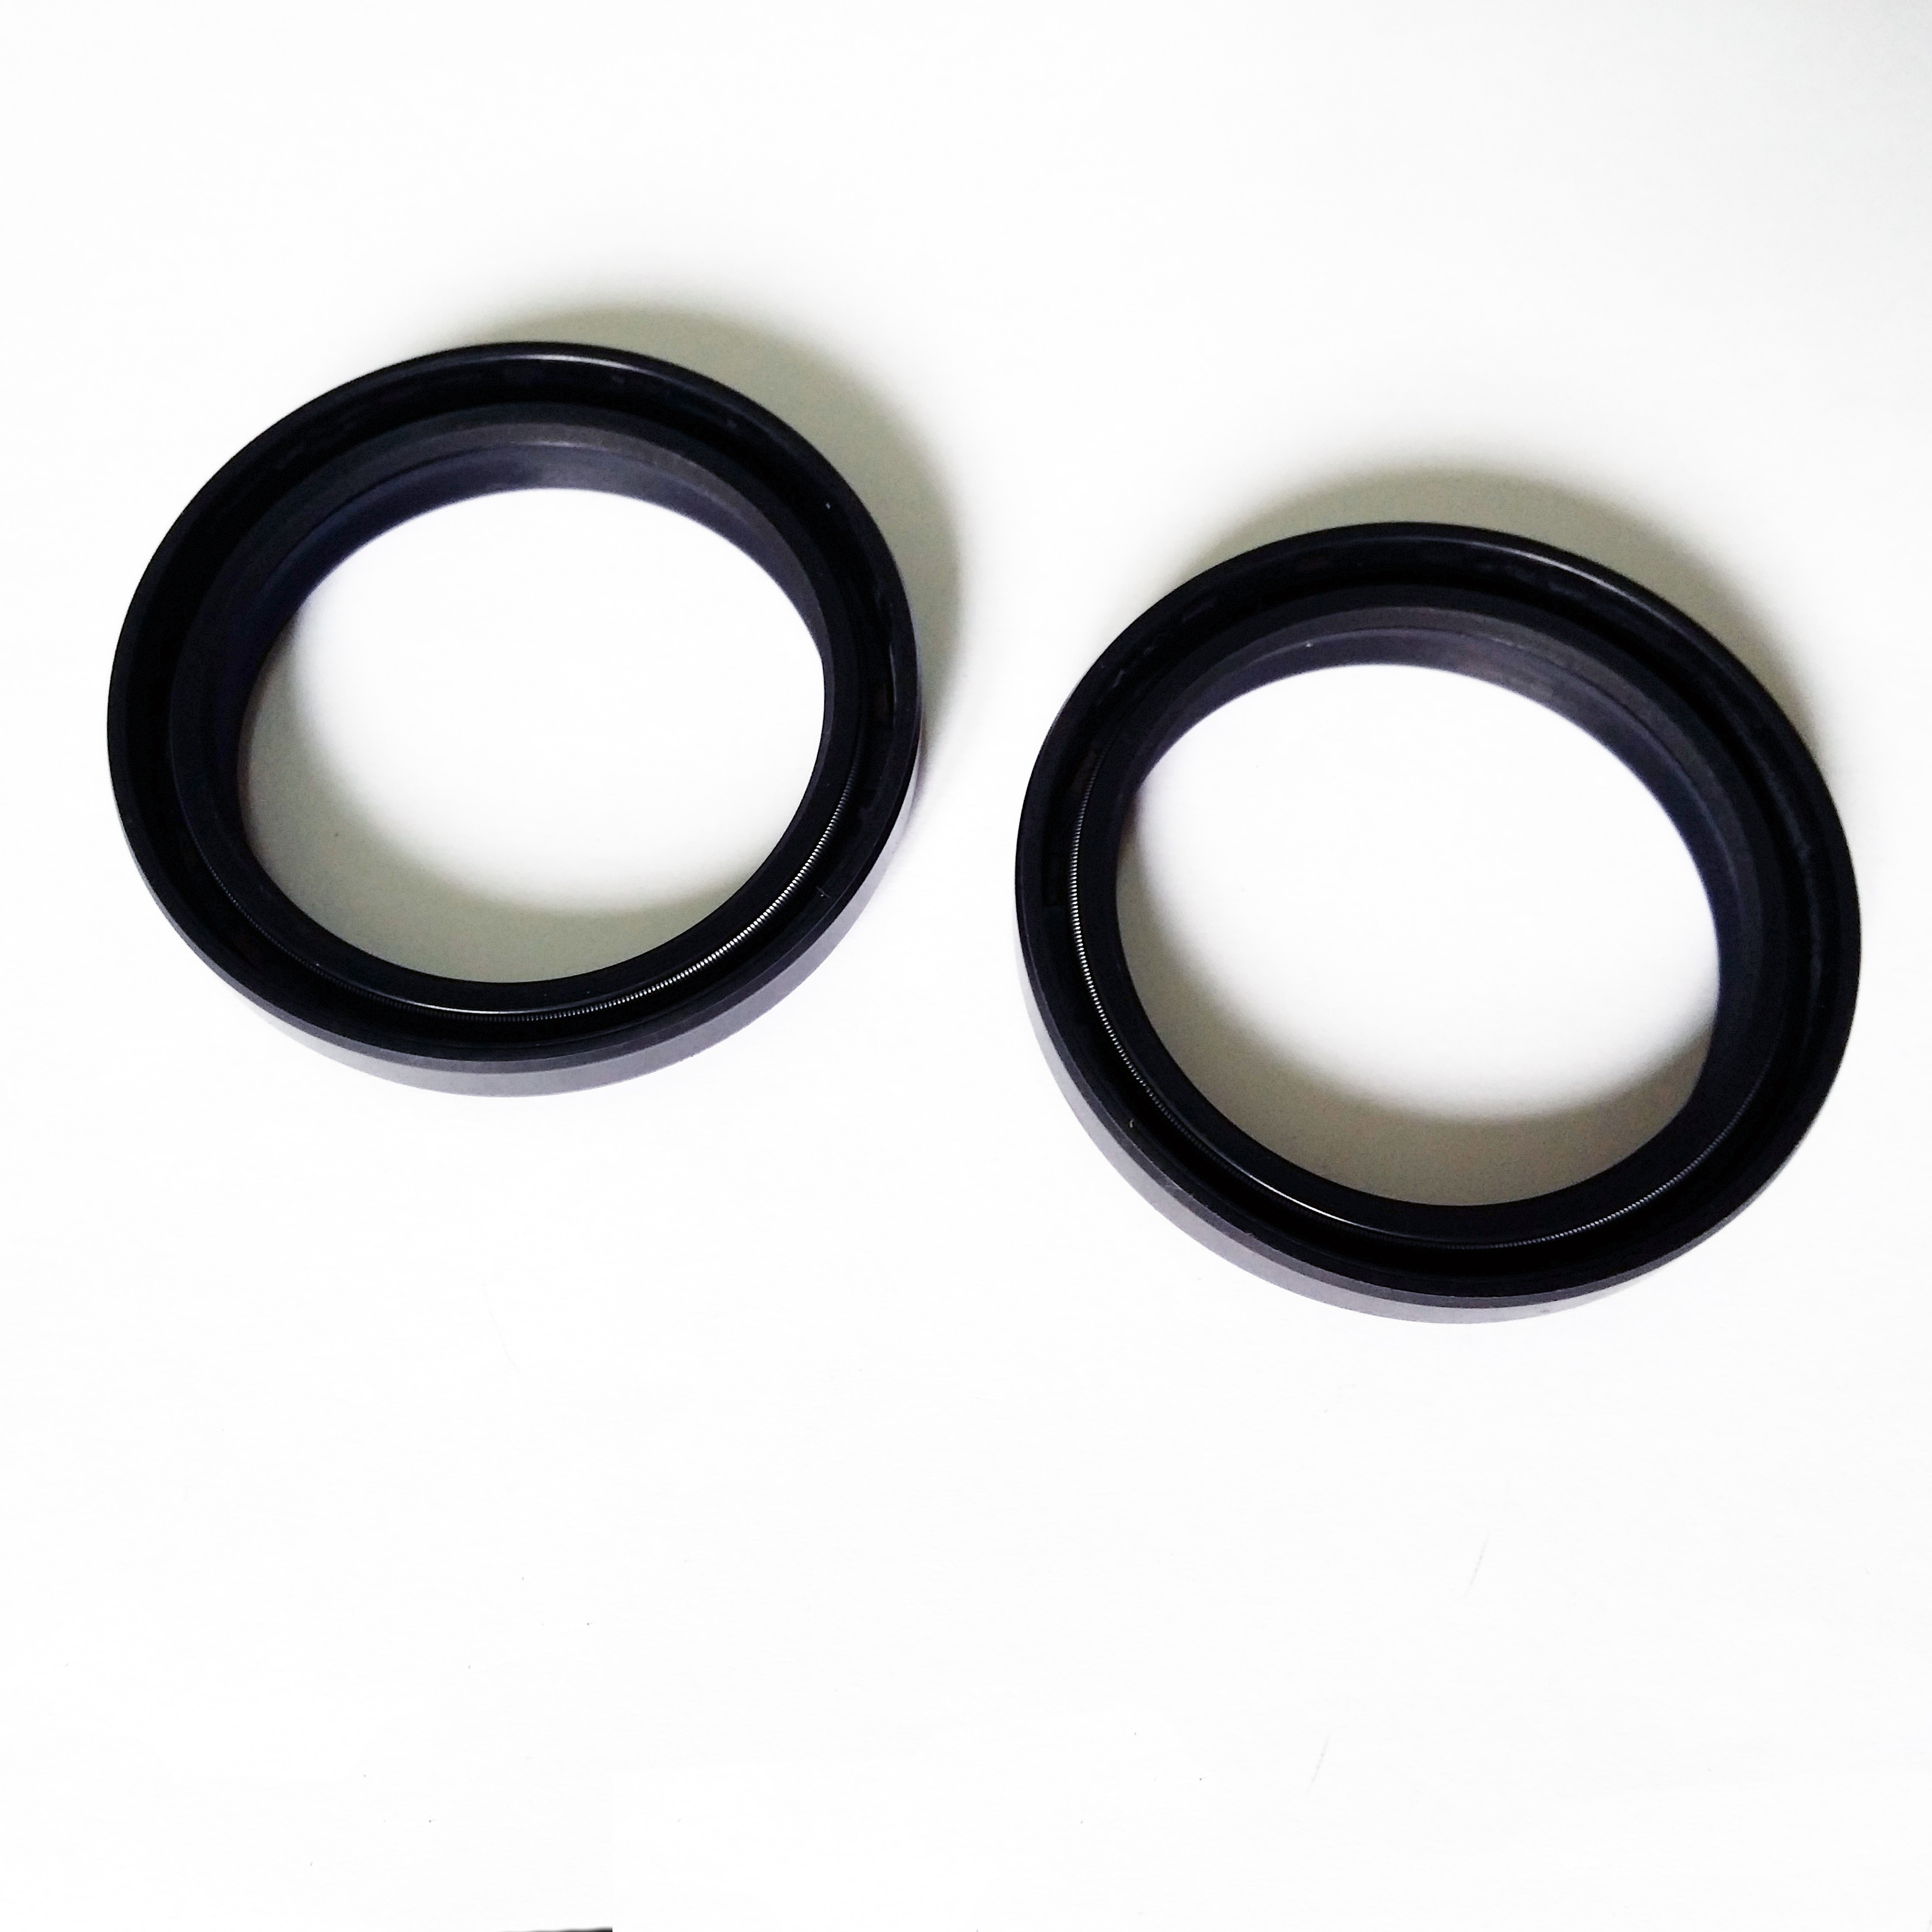 K-Tech Yamaha YZF-R1 1998-2001 NOK Front Fork Oil Seals 41x53x8/9.5mm